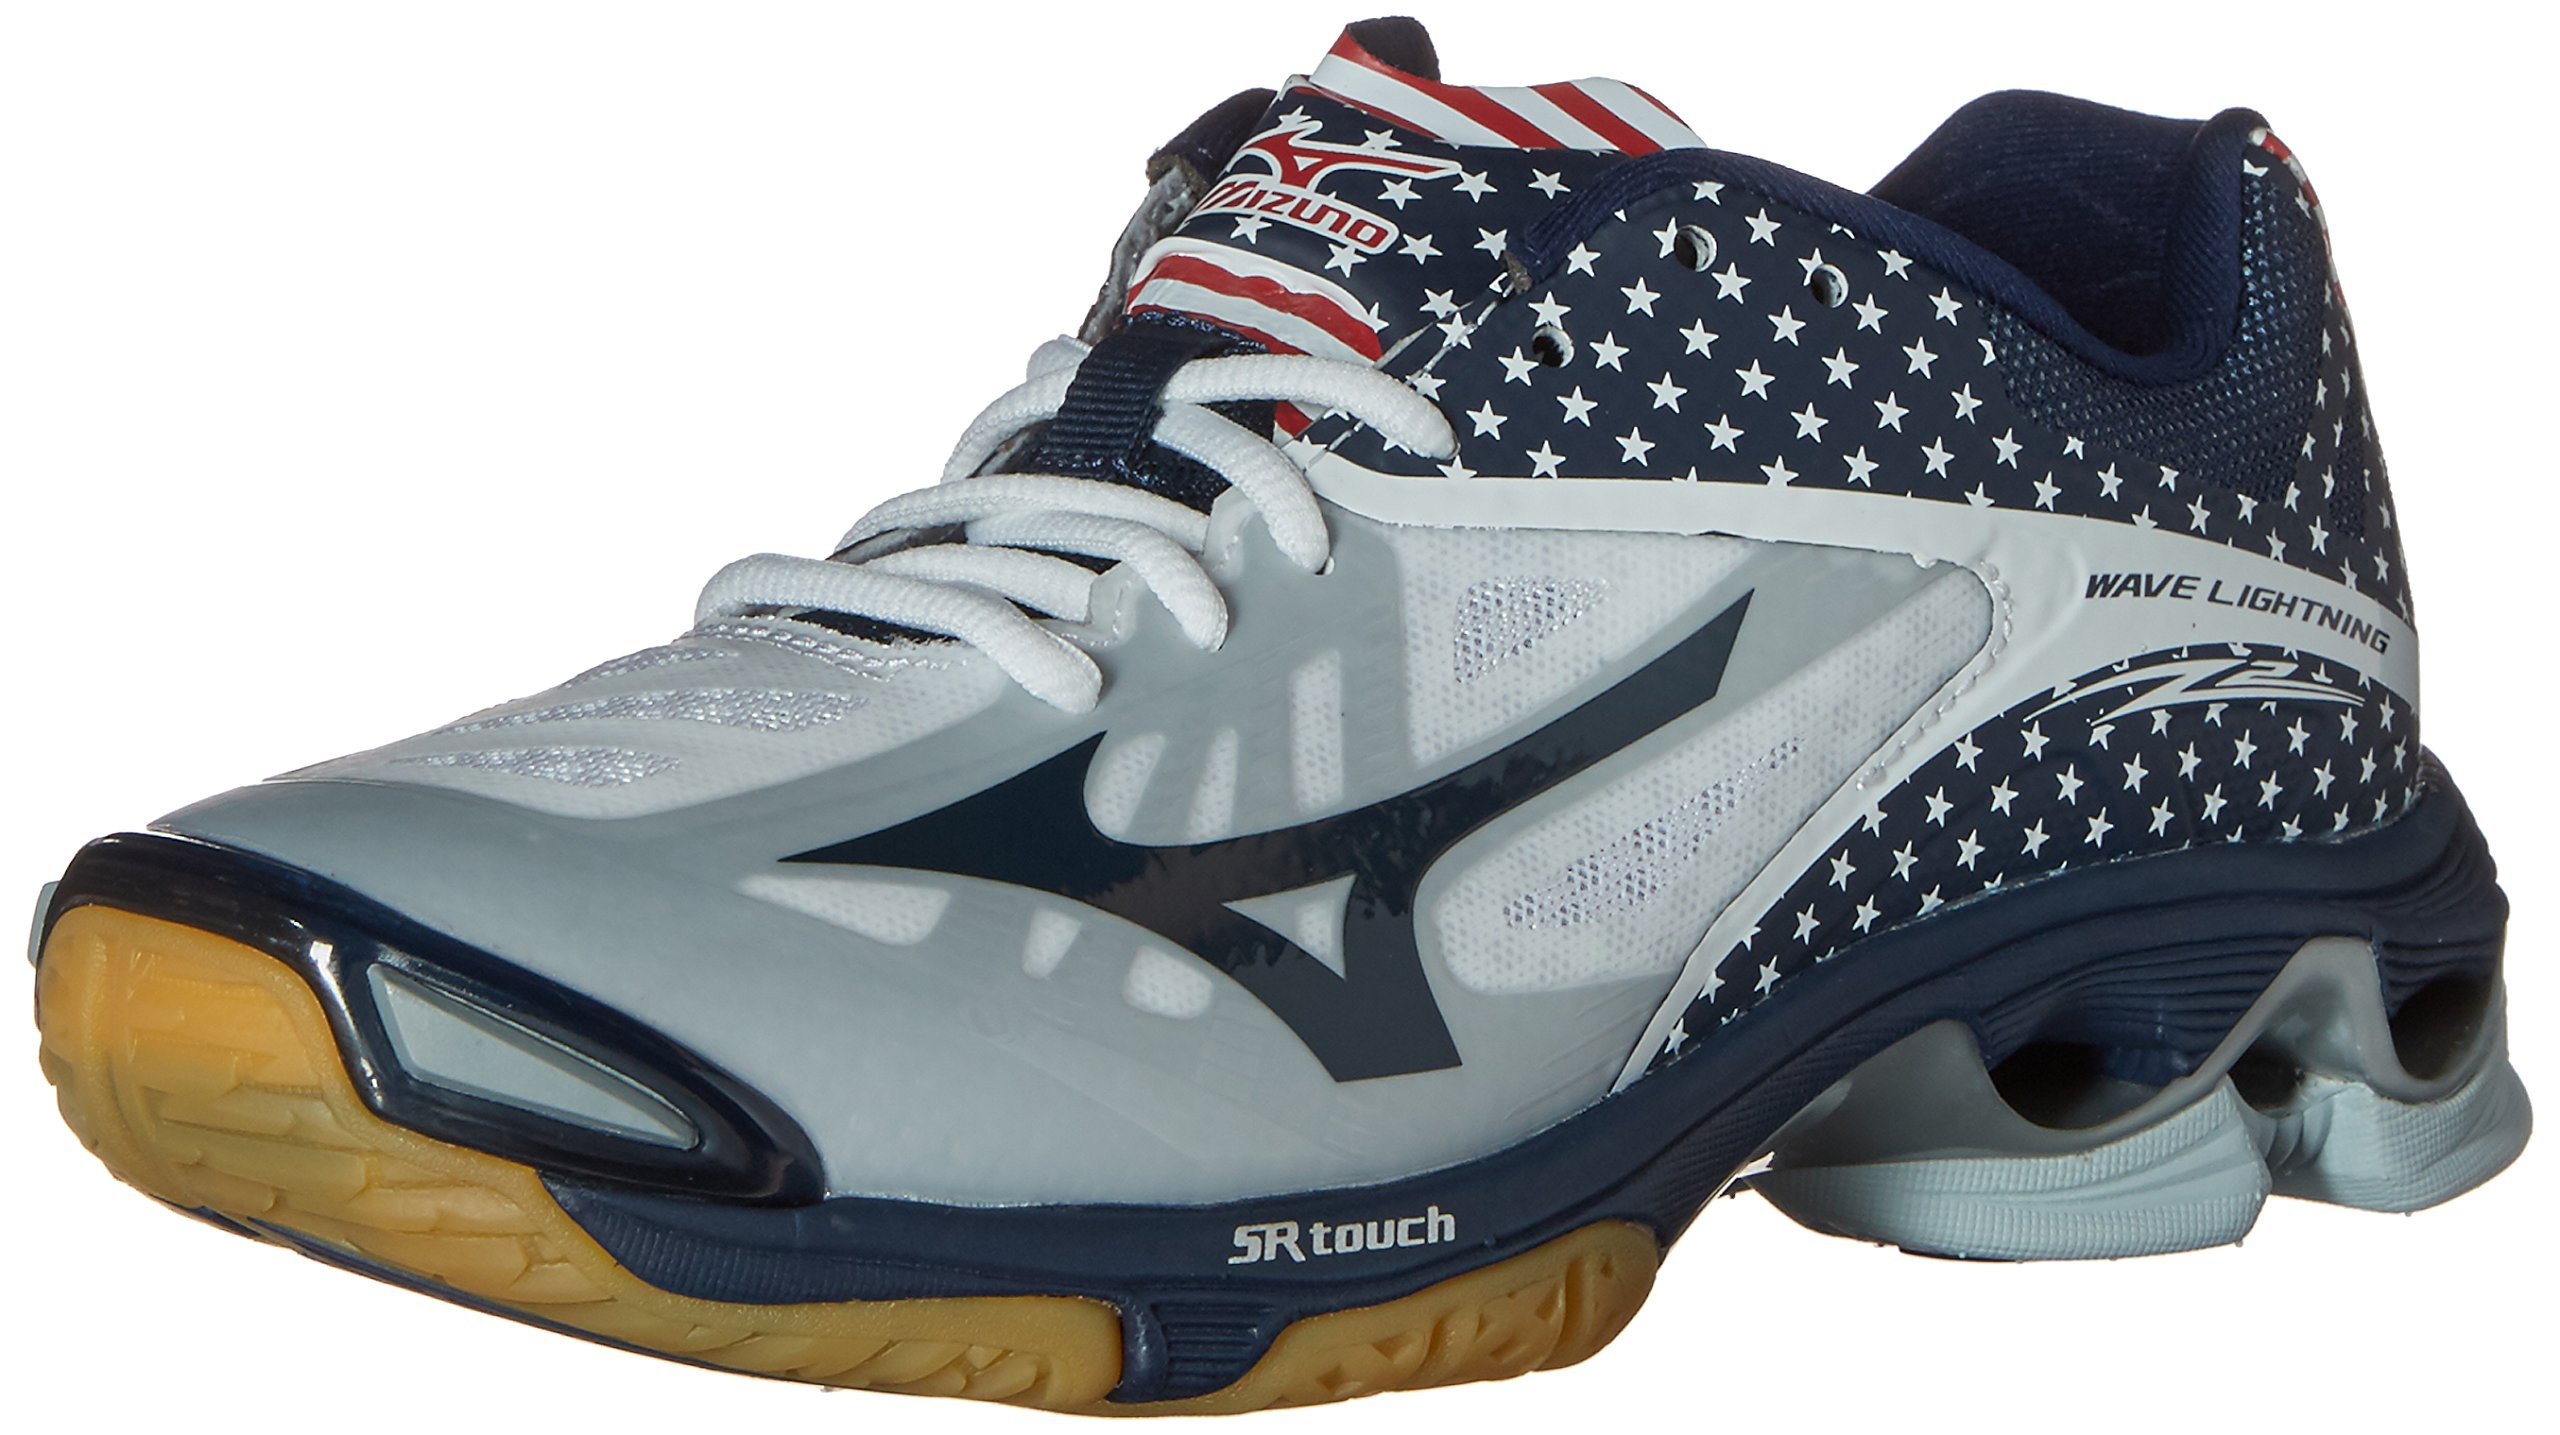 Mizuno Women's Wave Lighting Z2 Volleyball Shoe, Stars/Stripes, 10 D US